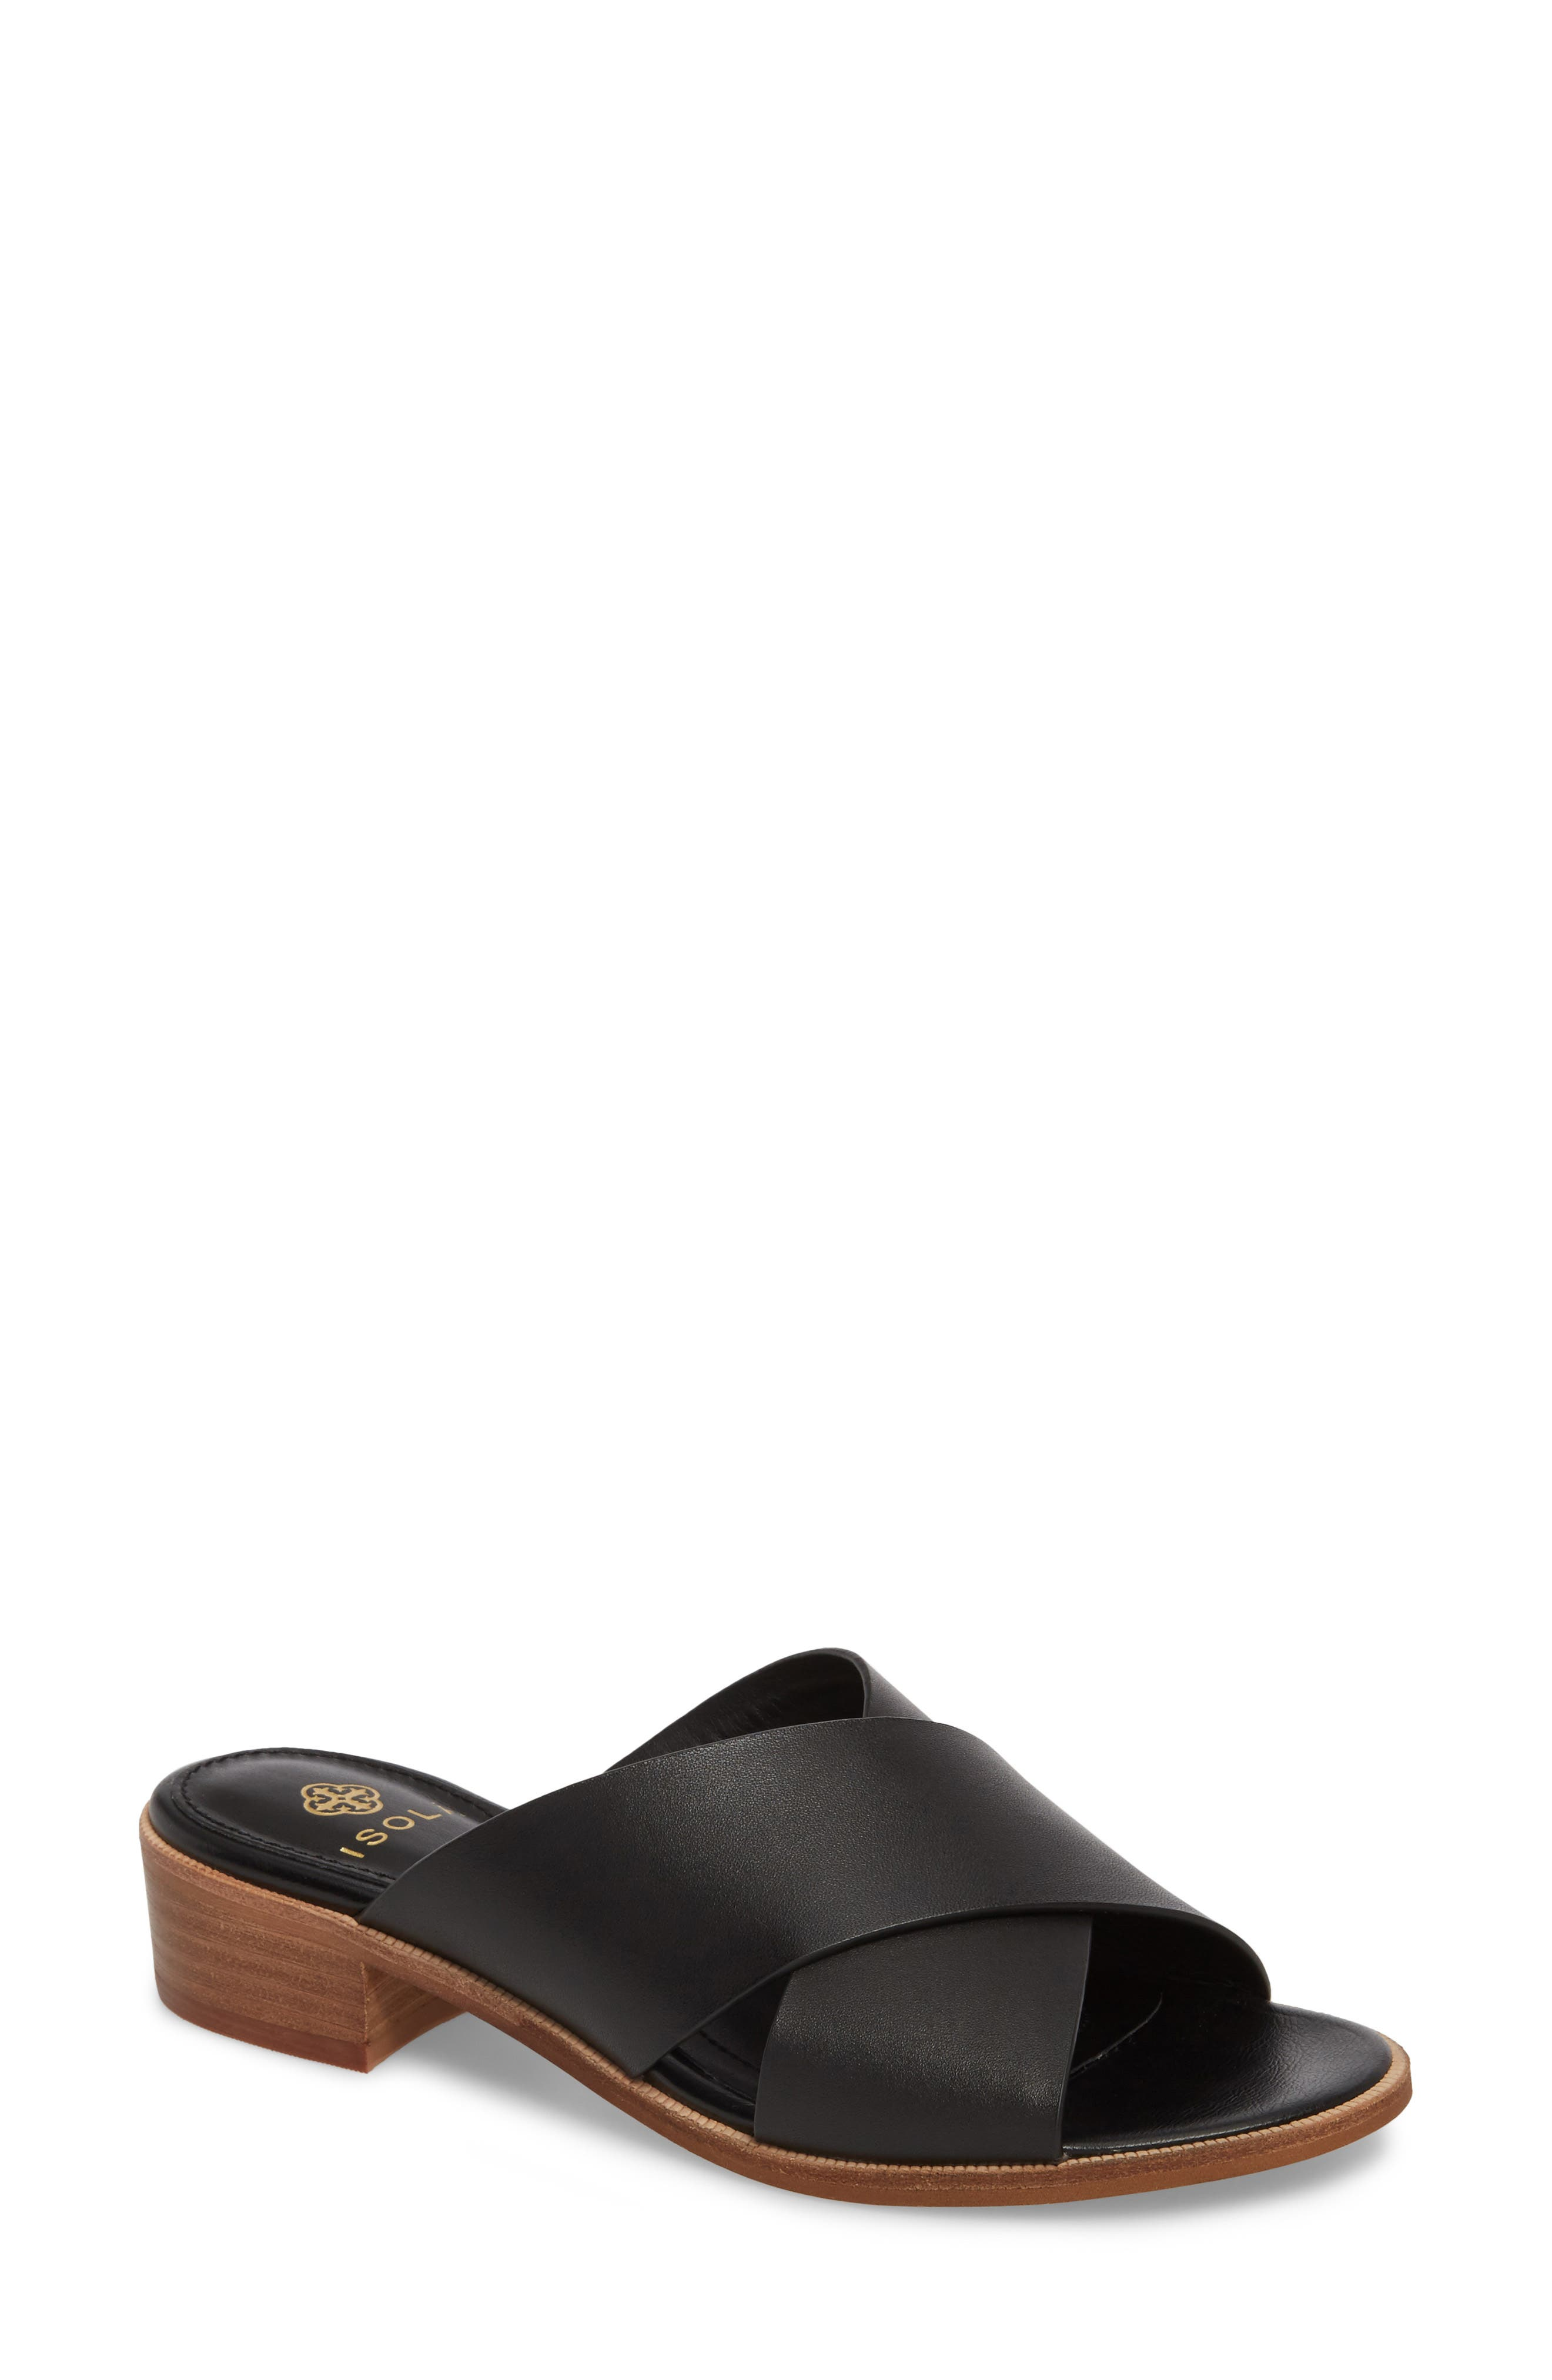 Isola Ginata Slide Sandal,                             Main thumbnail 1, color,                             Black Leather